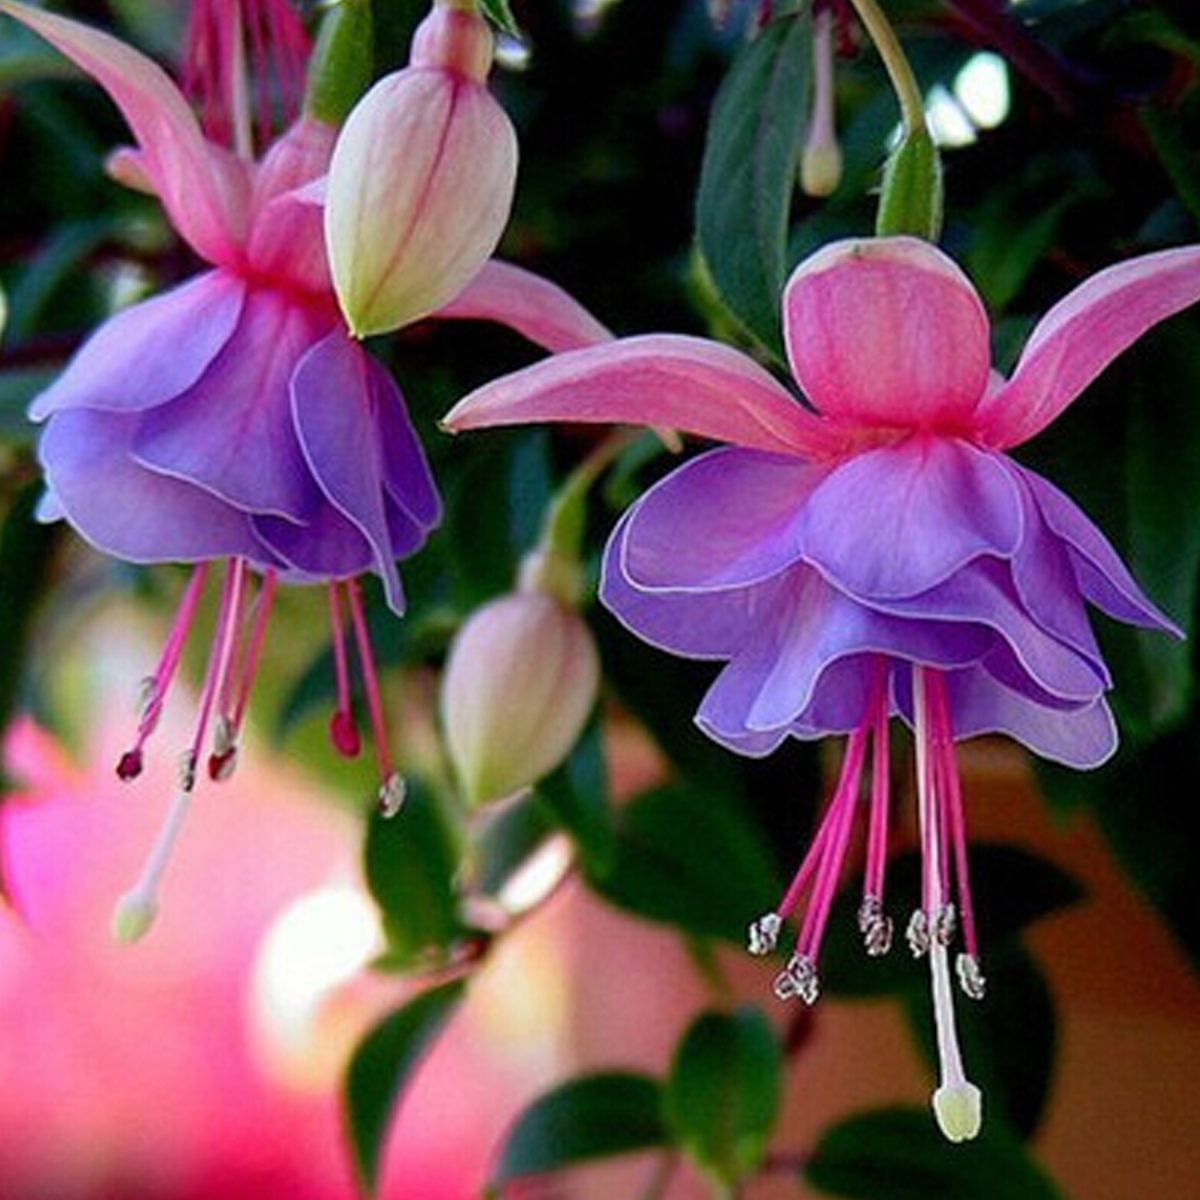 New rare flower seeds colorful golden bell diy home garden indoor plants decor ebay - Colorful indoor plants ...